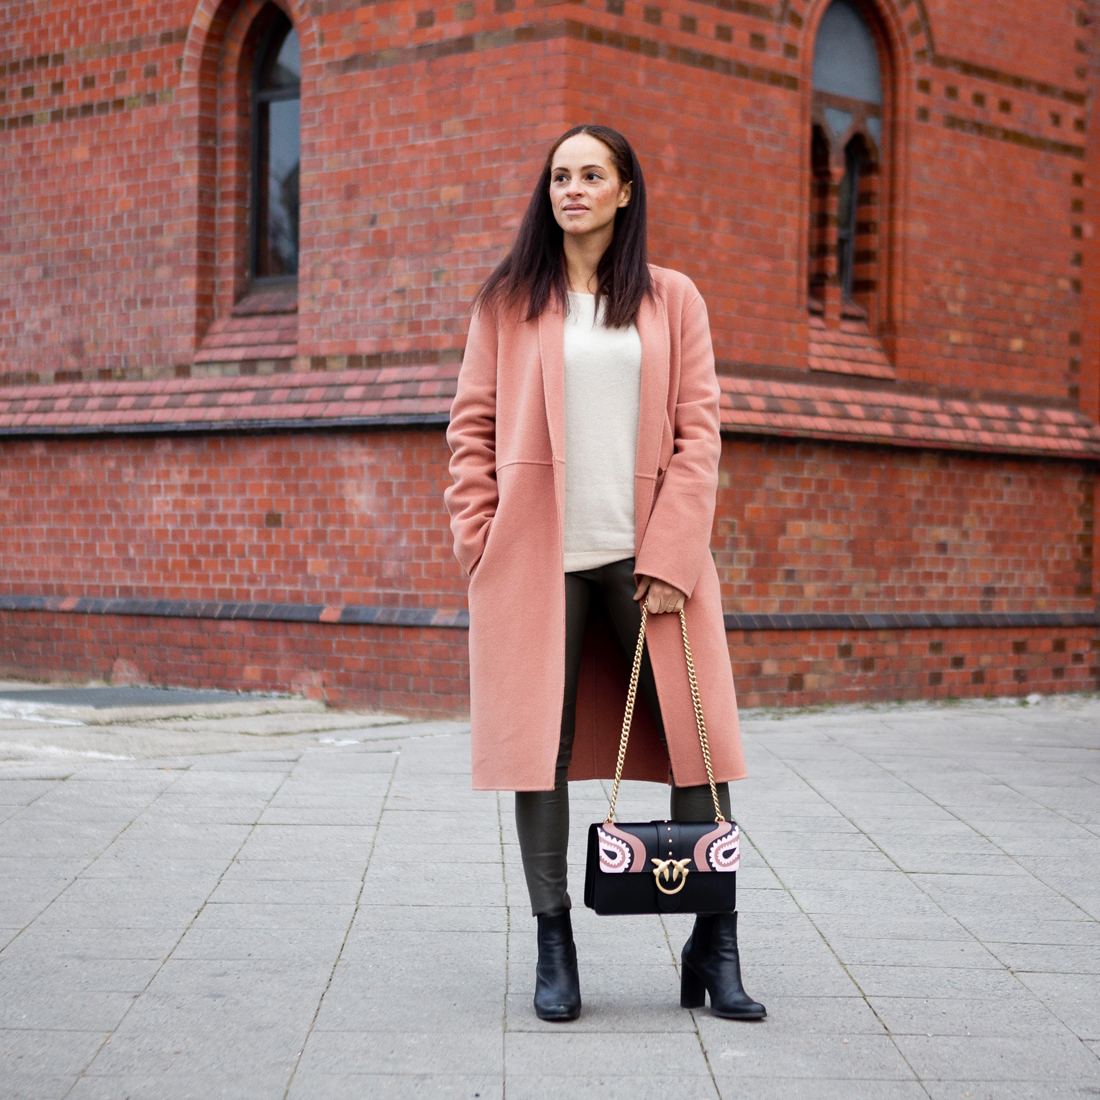 55cf37797f528 Berlin fashion blogger wearing outfit - Pinko love bag and Luisa Cerano  winter coat